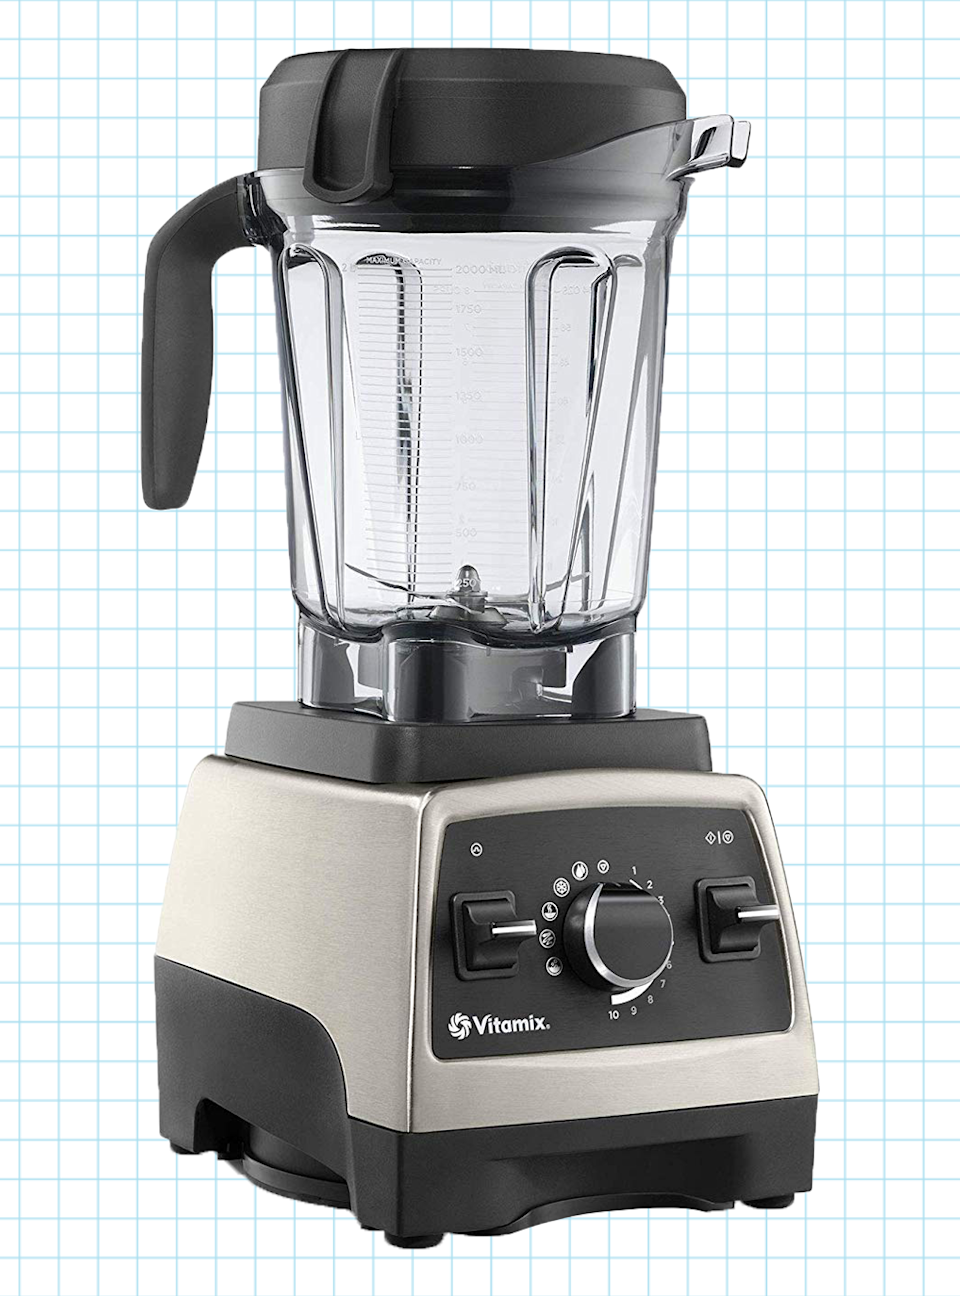 "<p><strong>Vitamix</strong></p><p>williamssonoma.com</p><p><strong>$599.95</strong></p><p><a href=""https://go.redirectingat.com?id=74968X1596630&url=https%3A%2F%2Fwww.williams-sonoma.com%2Fproducts%2Fvitamix-pro-750-heritage-blender%2F&sref=https%3A%2F%2Fwww.goodhousekeeping.com%2Fappliances%2Fblender-reviews%2Fg4864%2Fbest-blender-reviews%2F"" rel=""nofollow noopener"" target=""_blank"" data-ylk=""slk:Shop Now"" class=""link rapid-noclick-resp"">Shop Now</a></p><p>This super buzzy blender lives up to the hype. It has a large, 64-ounce clear plastic jar with a nonslip handle to facilitate pouring, and comes with a <strong>tamper to help process thick mixtures like nut butters and frozen desserts</strong>. The control panel has 10 speeds and five pre-programmed settings, allowing you to make a variety of blended beverages exactly the way you want them (read: not a single strawberry seed or fleck of spinach will be left behind). </p><p><strong>Cons</strong>: Its only flaw is the price tag. </p>"